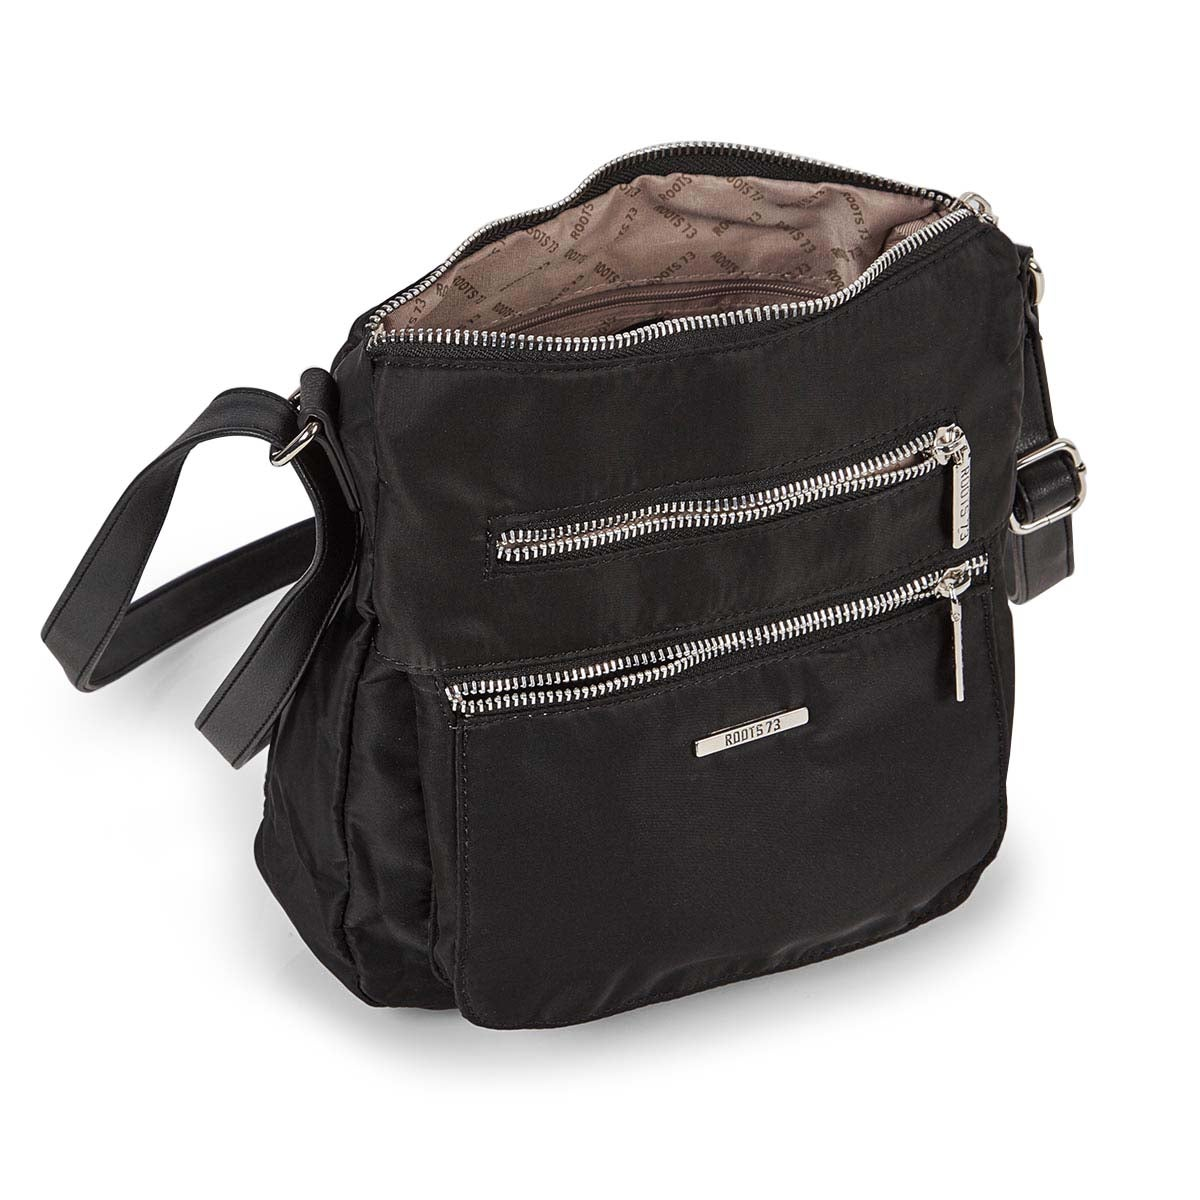 Lds blk north/south top zip crossbody